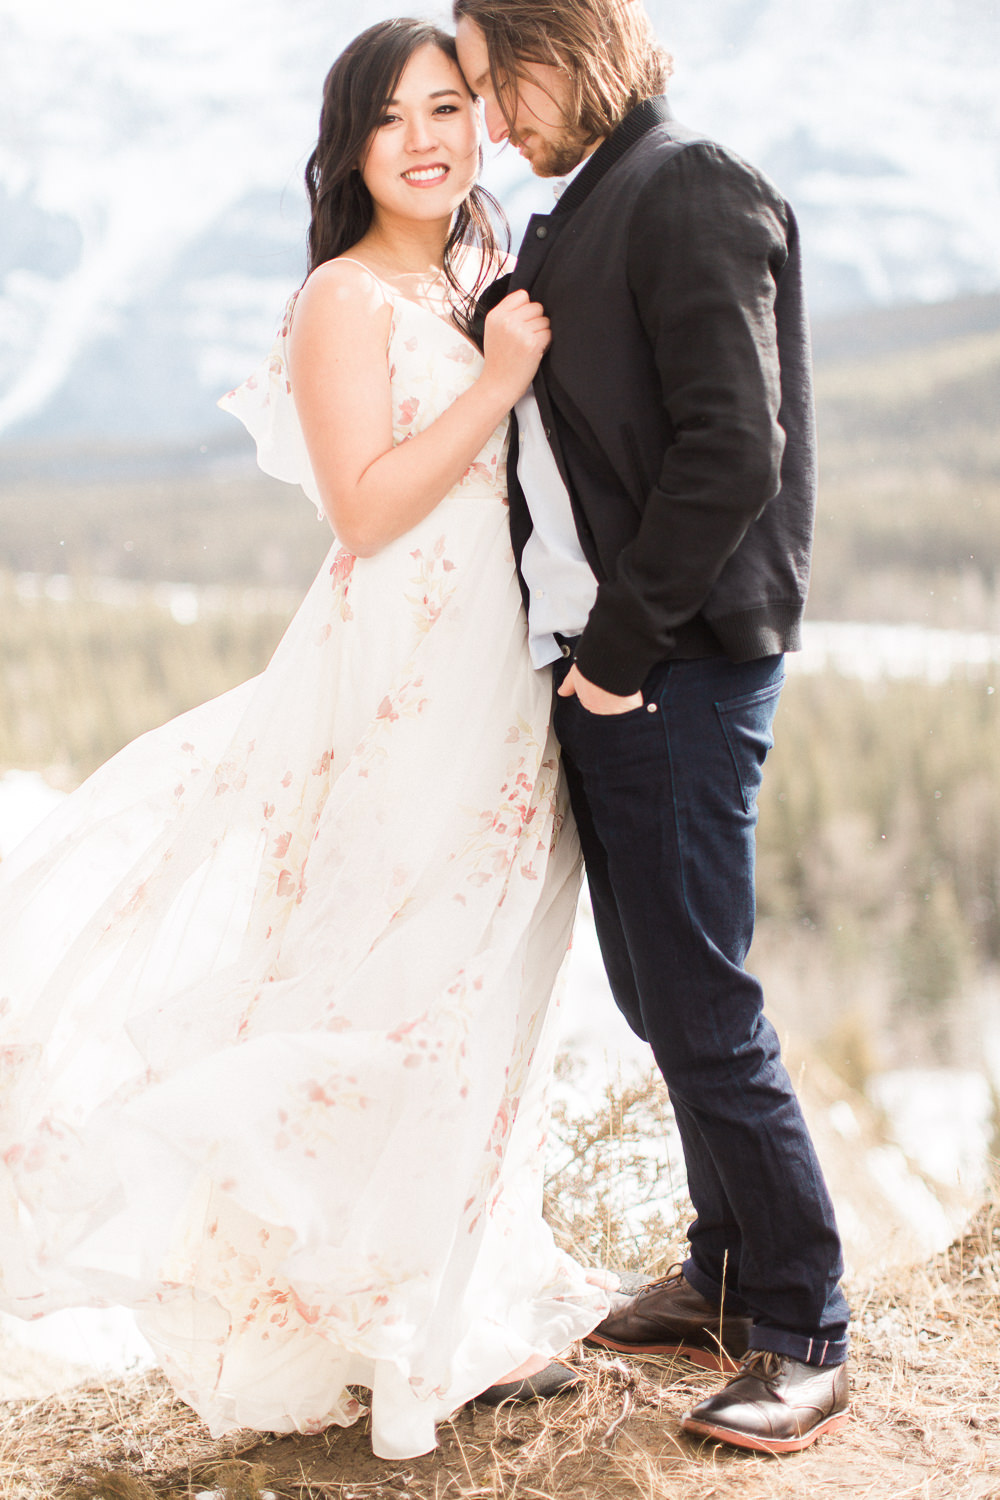 Banff-engagement-session-19.jpg